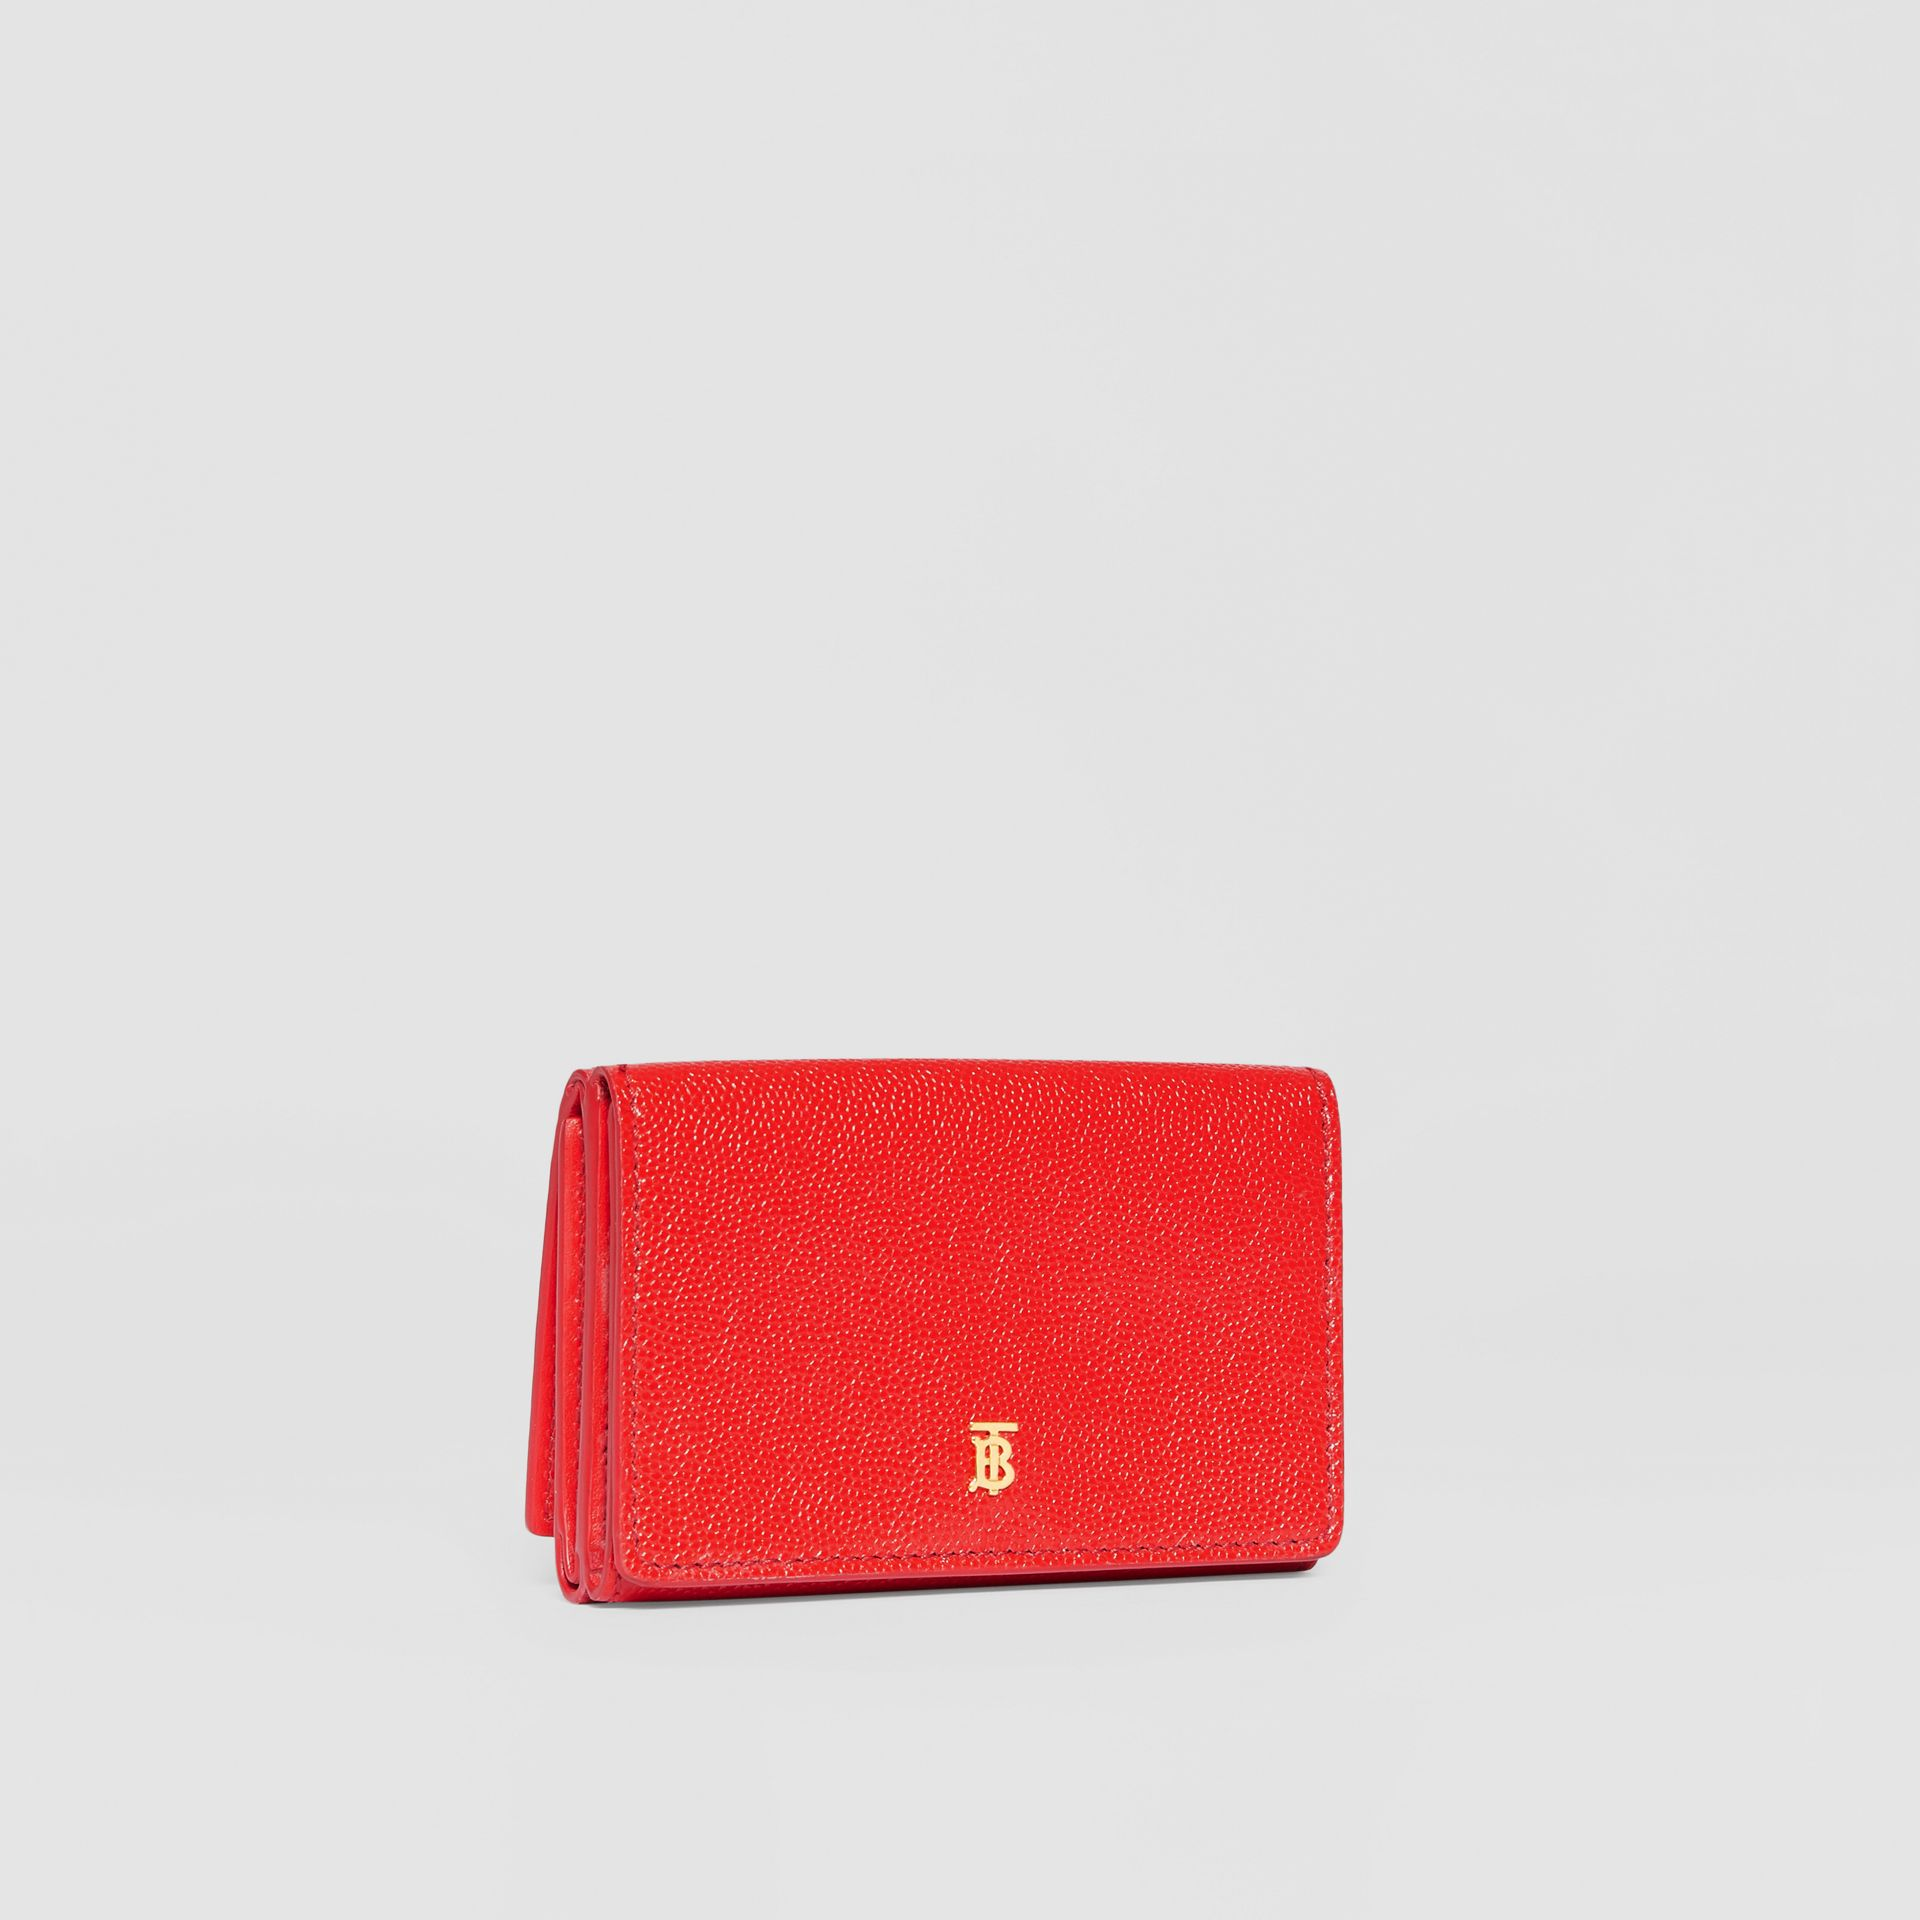 Small Grainy Leather Folding Wallet in Bright Red - Women | Burberry Canada - gallery image 3